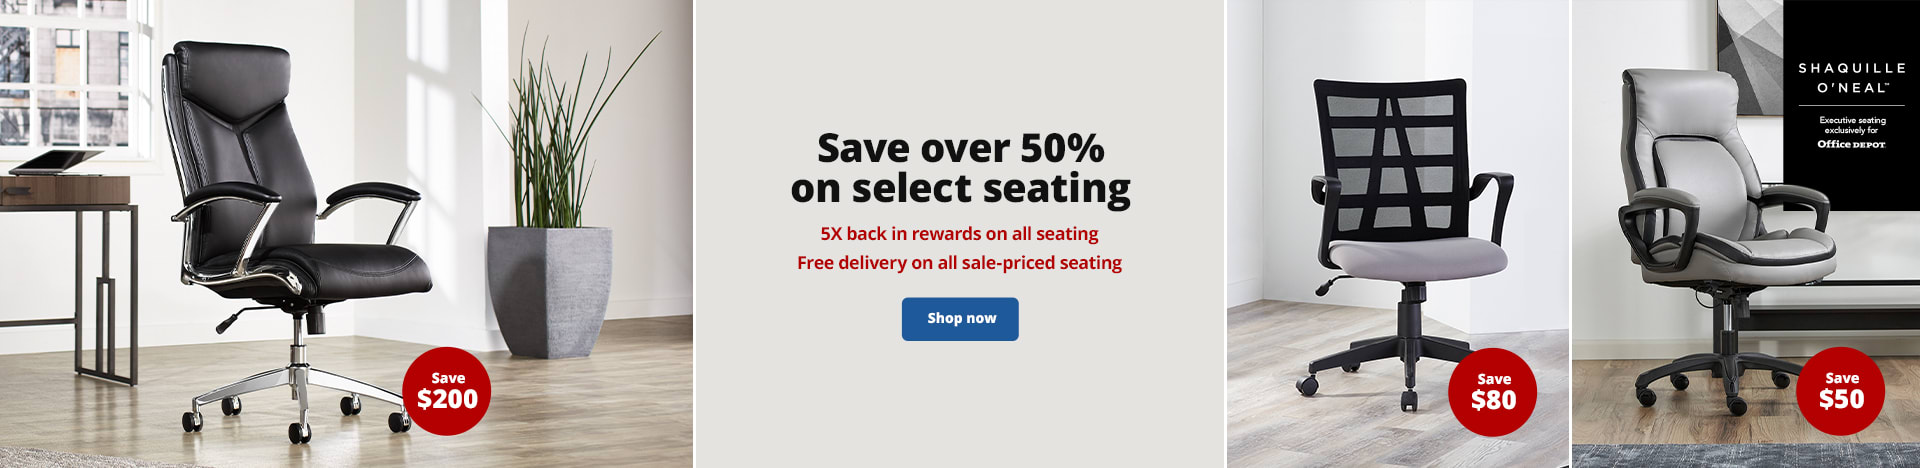 Work From Anywhere. Save over 50% on select seating. Free delivery on all sale-priced furniture